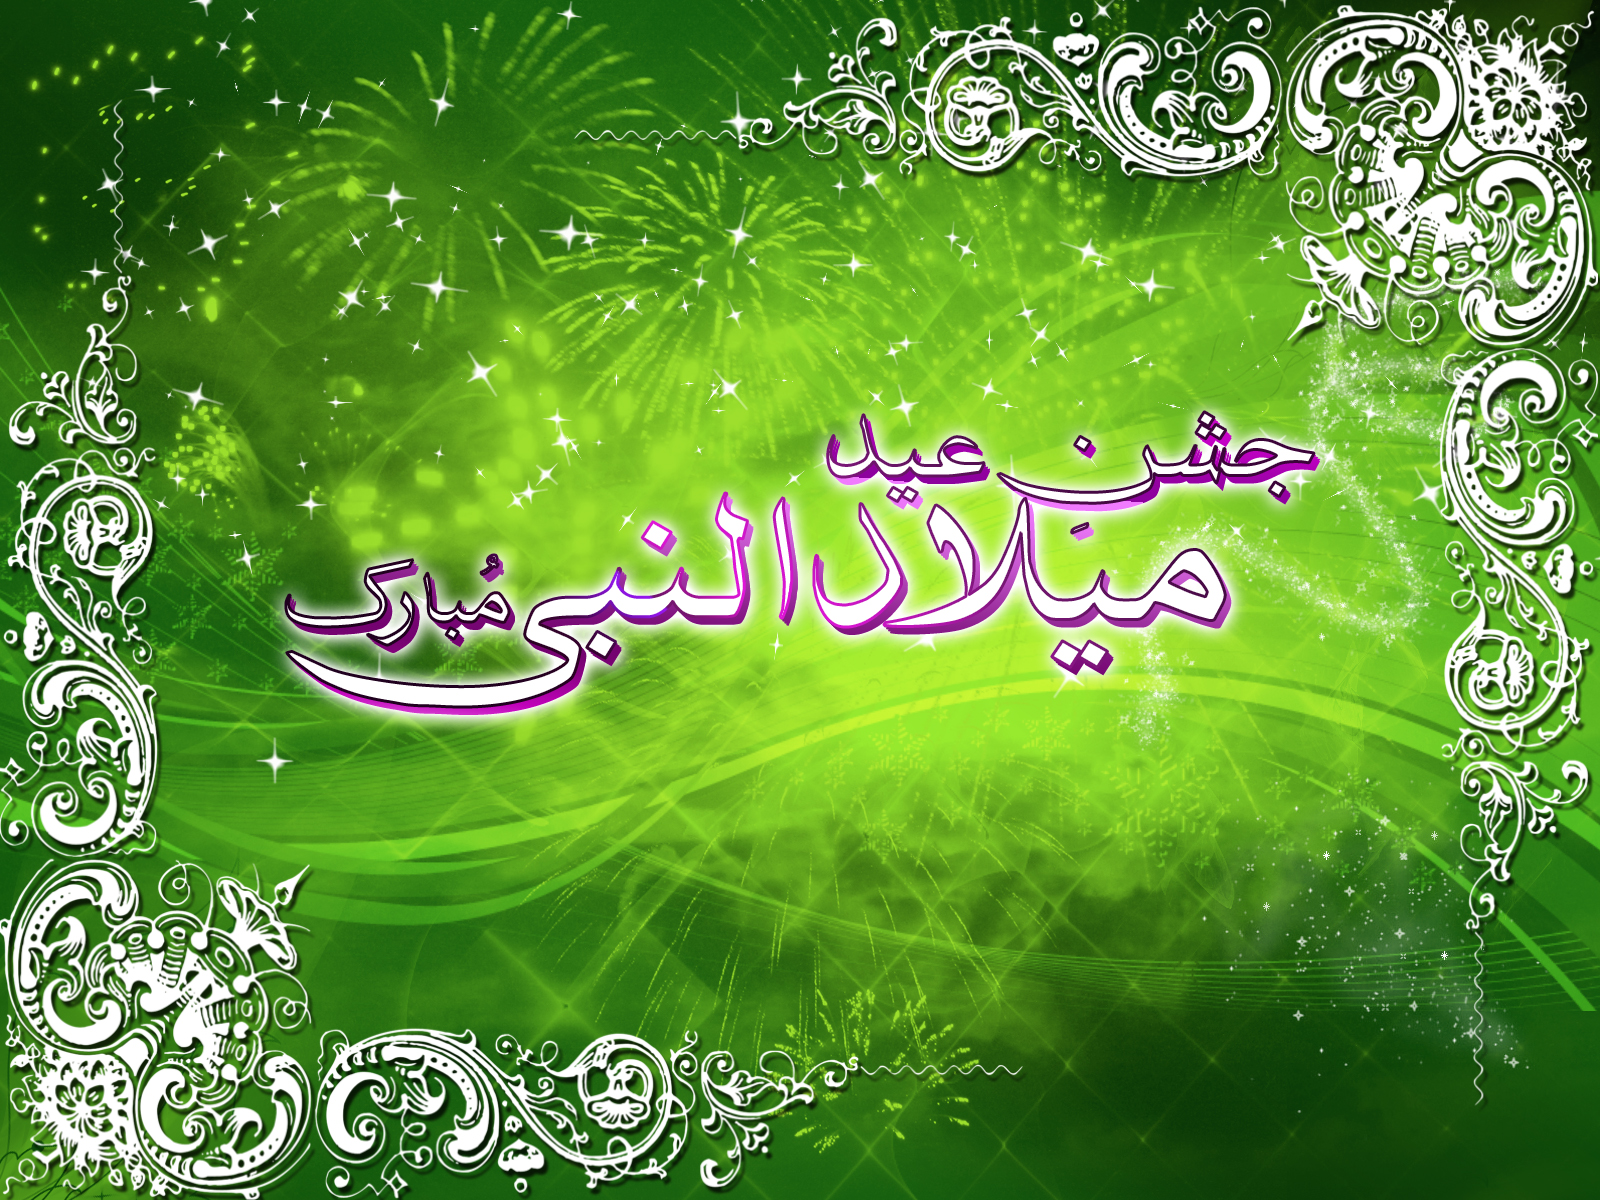 Advance Eid Milad-un Nabi SMS Messages Images Wishes Whatsapp Status